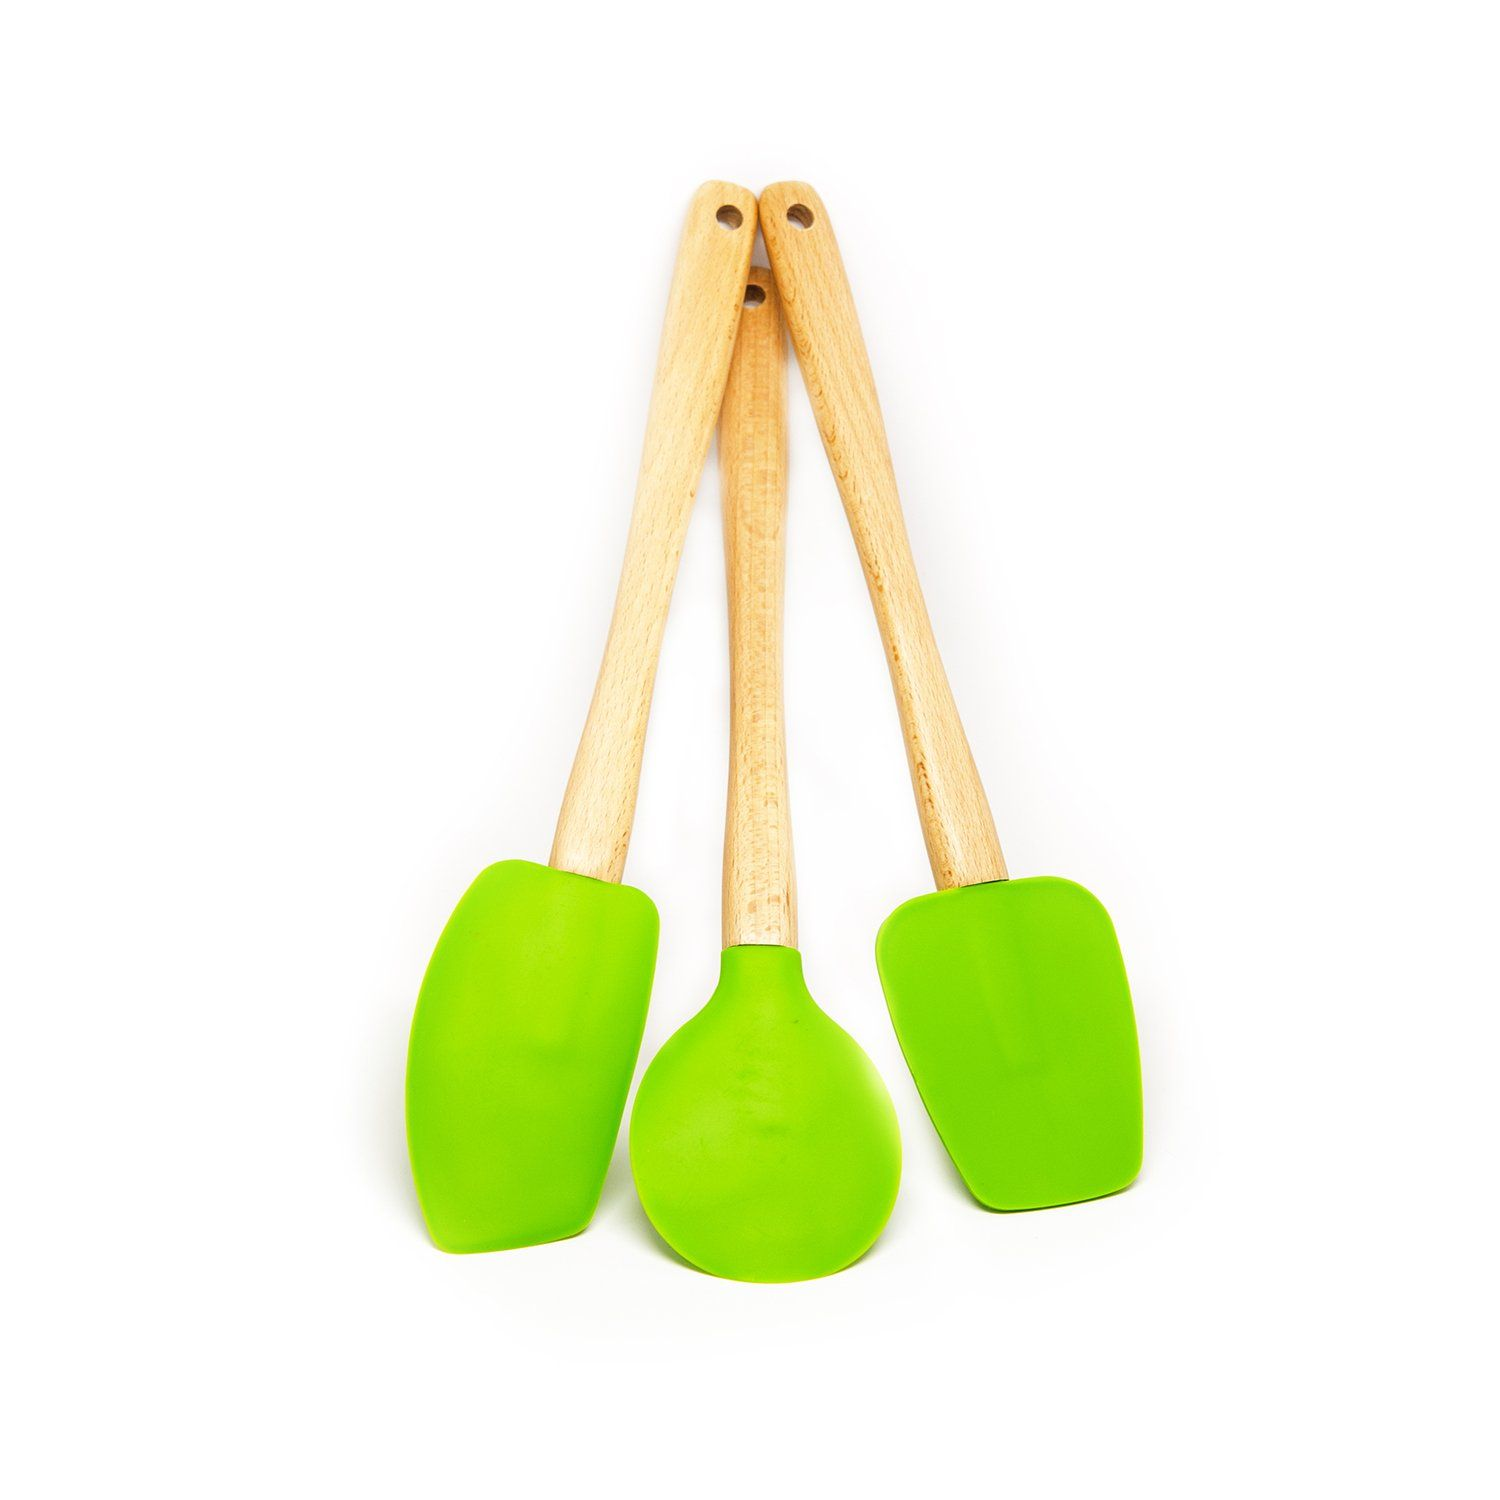 Really Any Wood Handled Spatulas With Heat Resistant